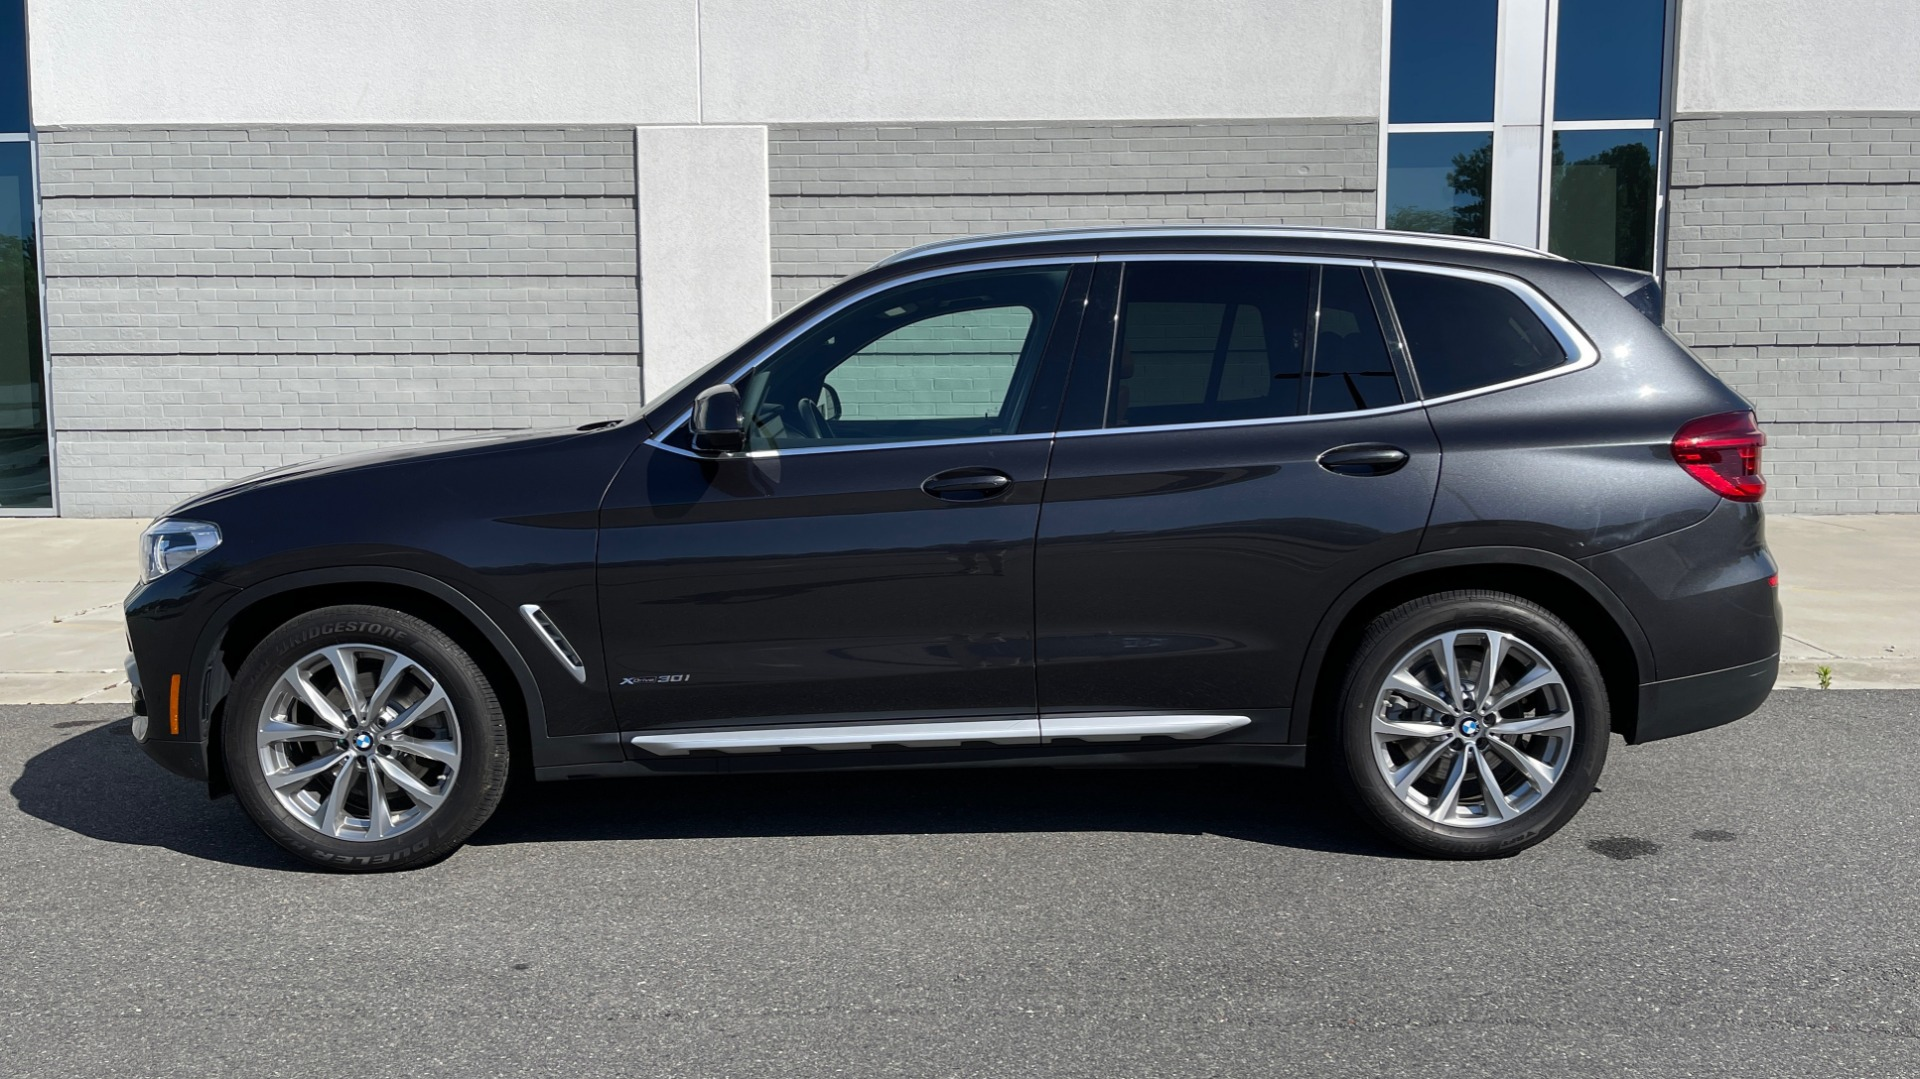 Used 2018 BMW X3 XDRIVE30I PREMIUM / NAV / DRVR ASST PLUS / CONV PKG / SUNROOF / REARVIEW for sale $33,795 at Formula Imports in Charlotte NC 28227 6